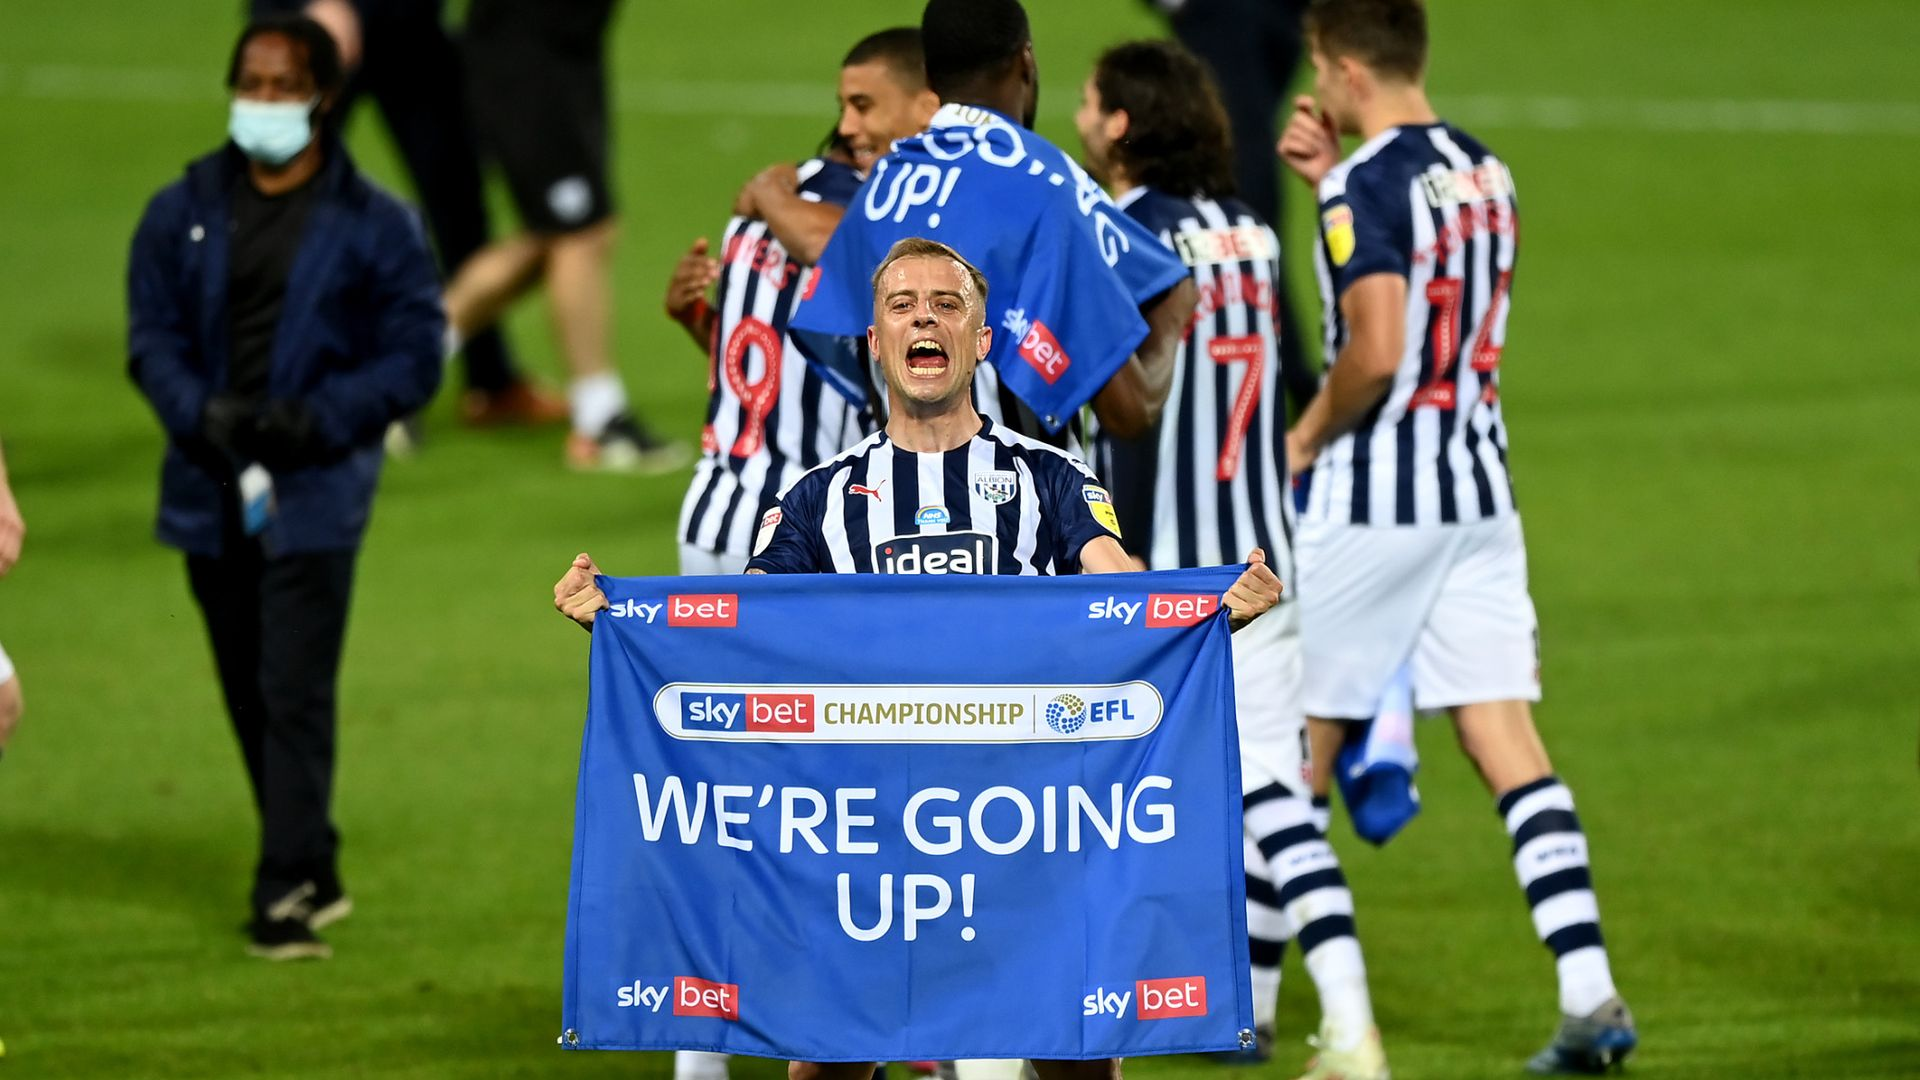 West Brom seal promotion after QPR draw